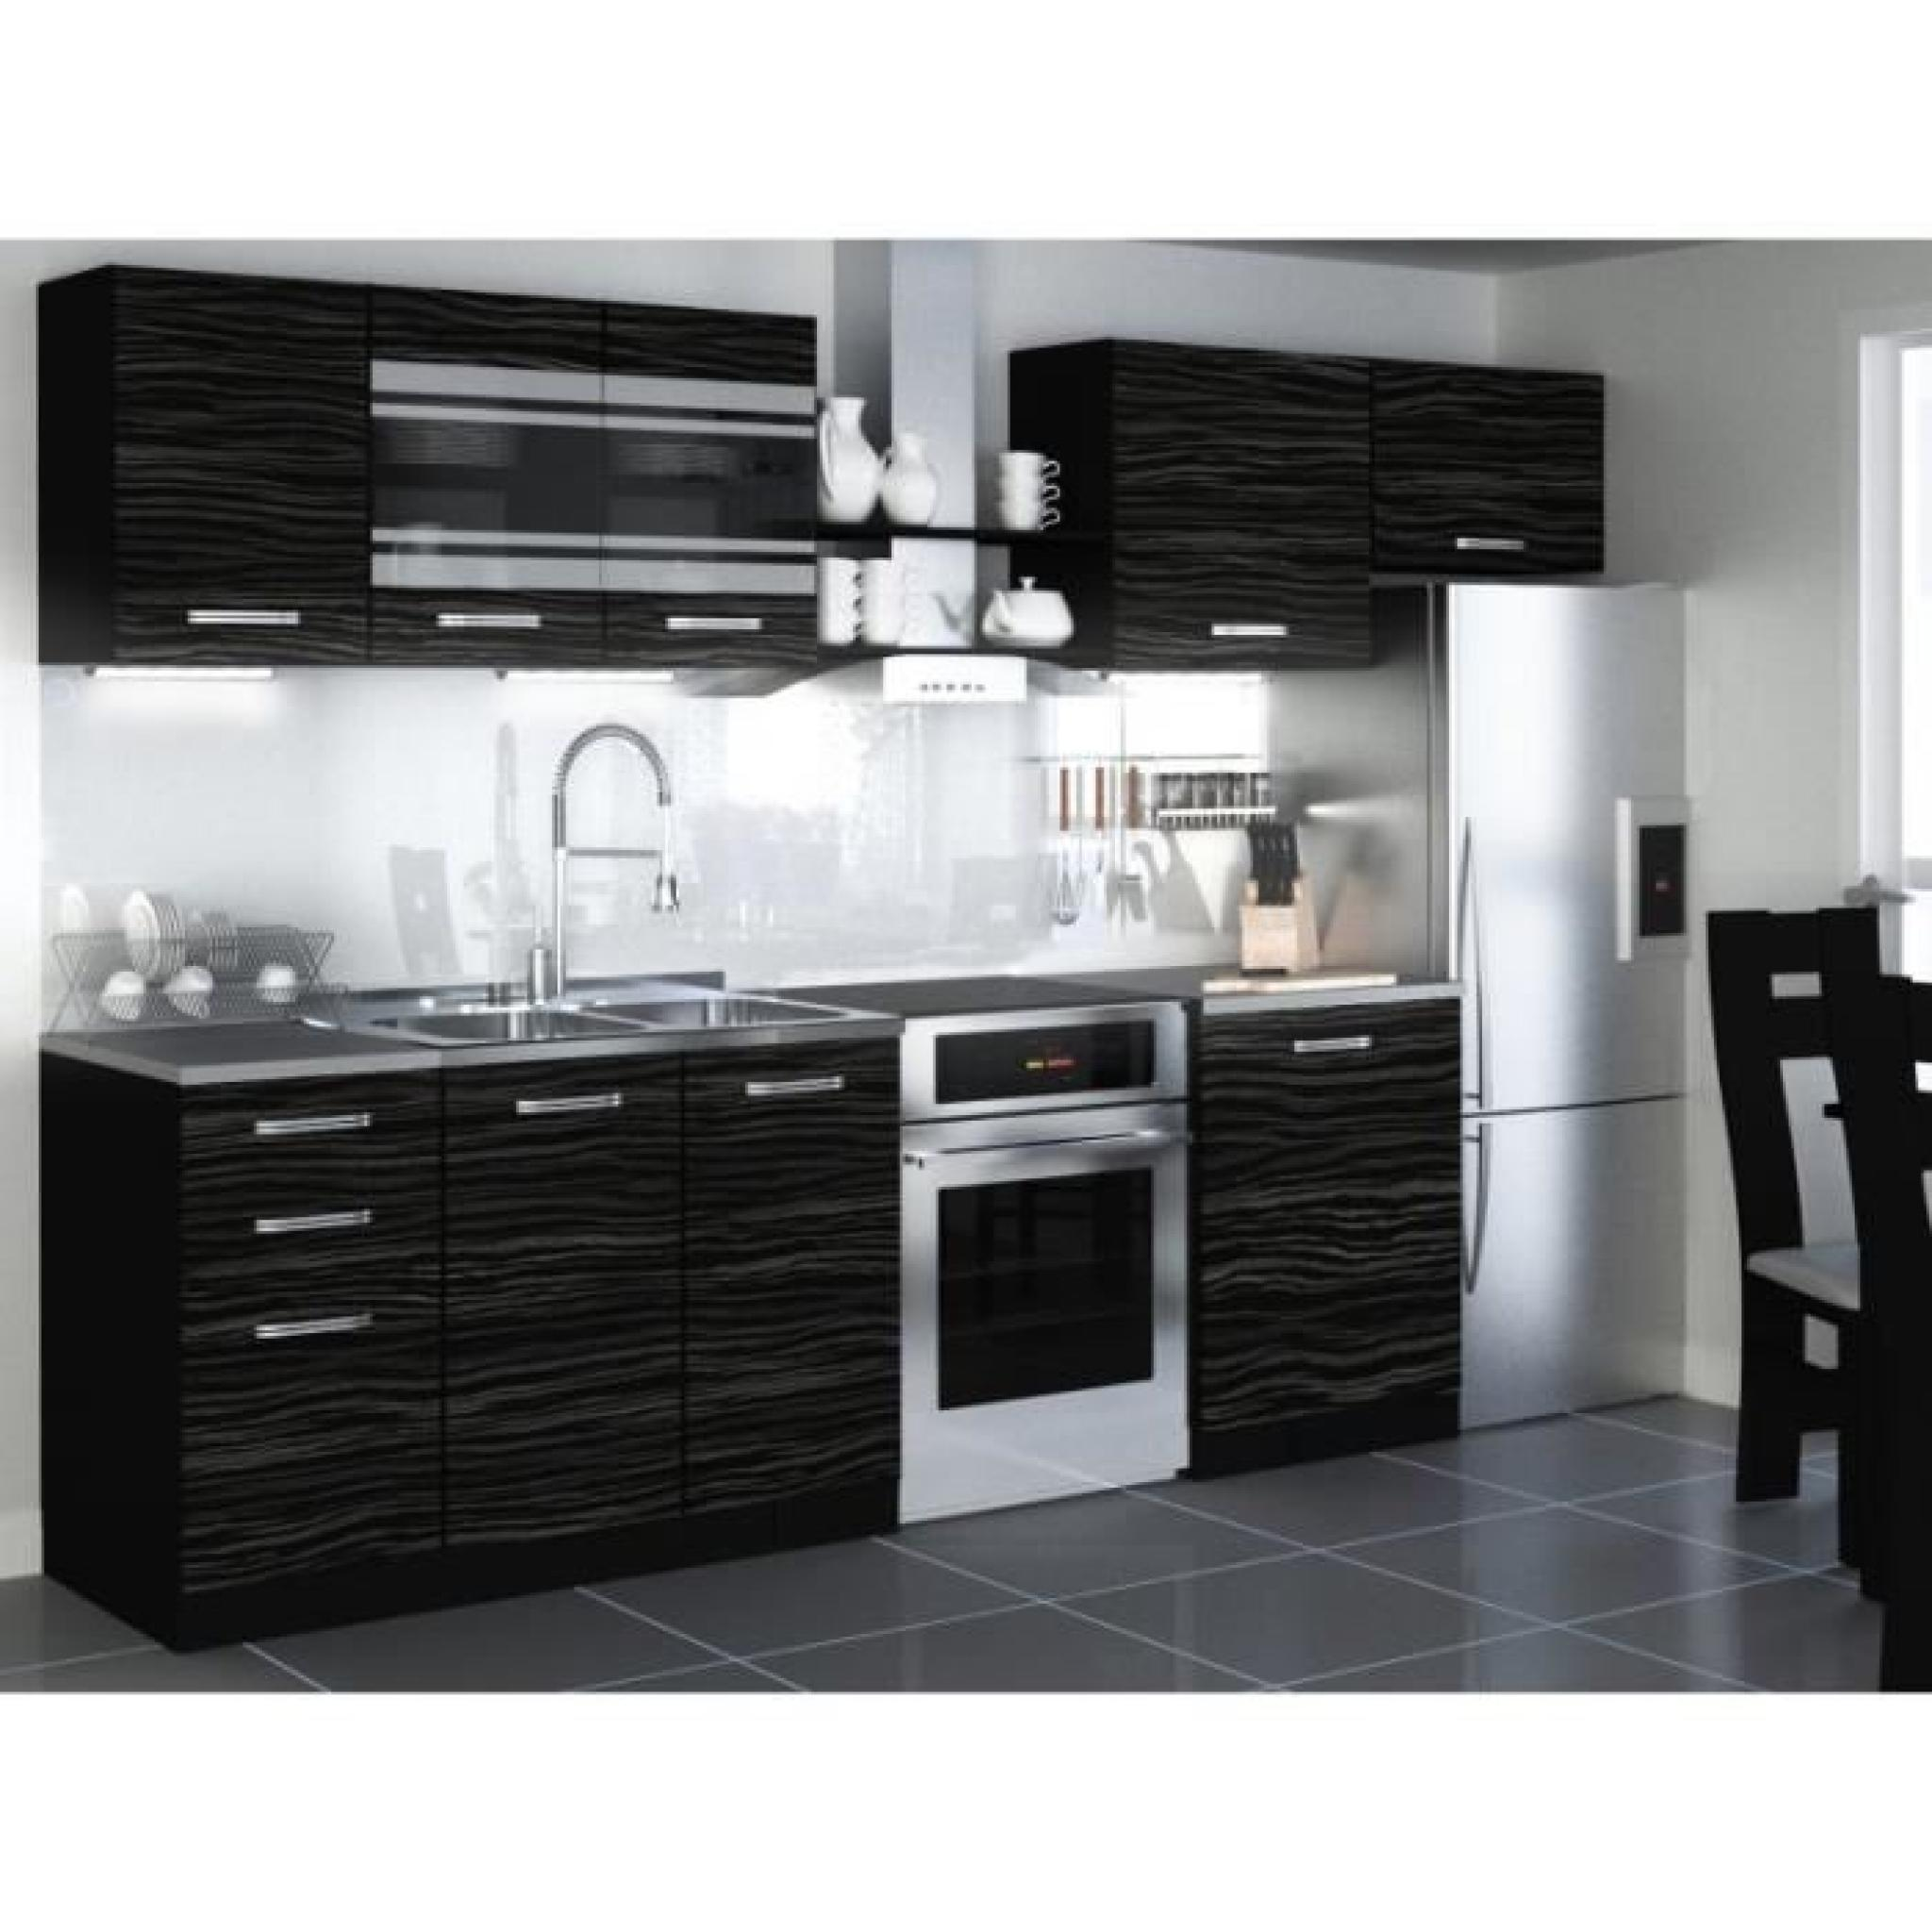 justhome torino 1 led cuisine quip e compl te 300 cm mod le de poign e 2 achat vente cuisine. Black Bedroom Furniture Sets. Home Design Ideas